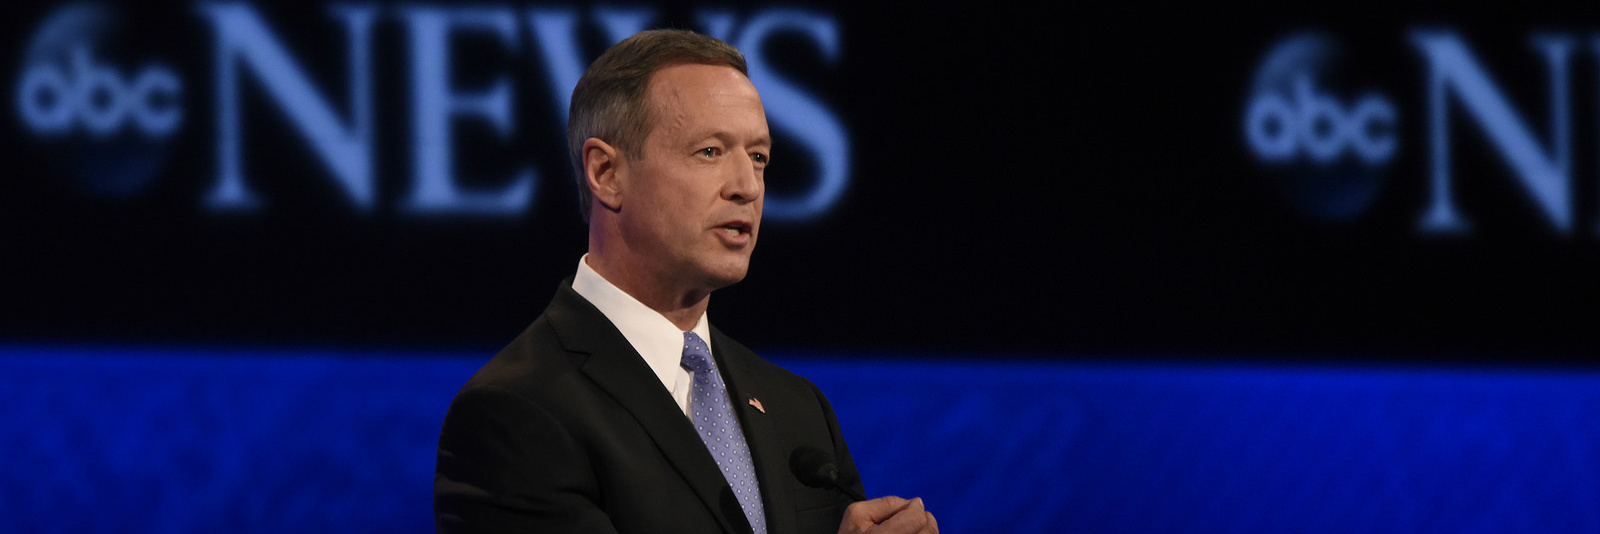 Why O'Malley Second Choices Matter in Iowa, and Huckabee's May Not